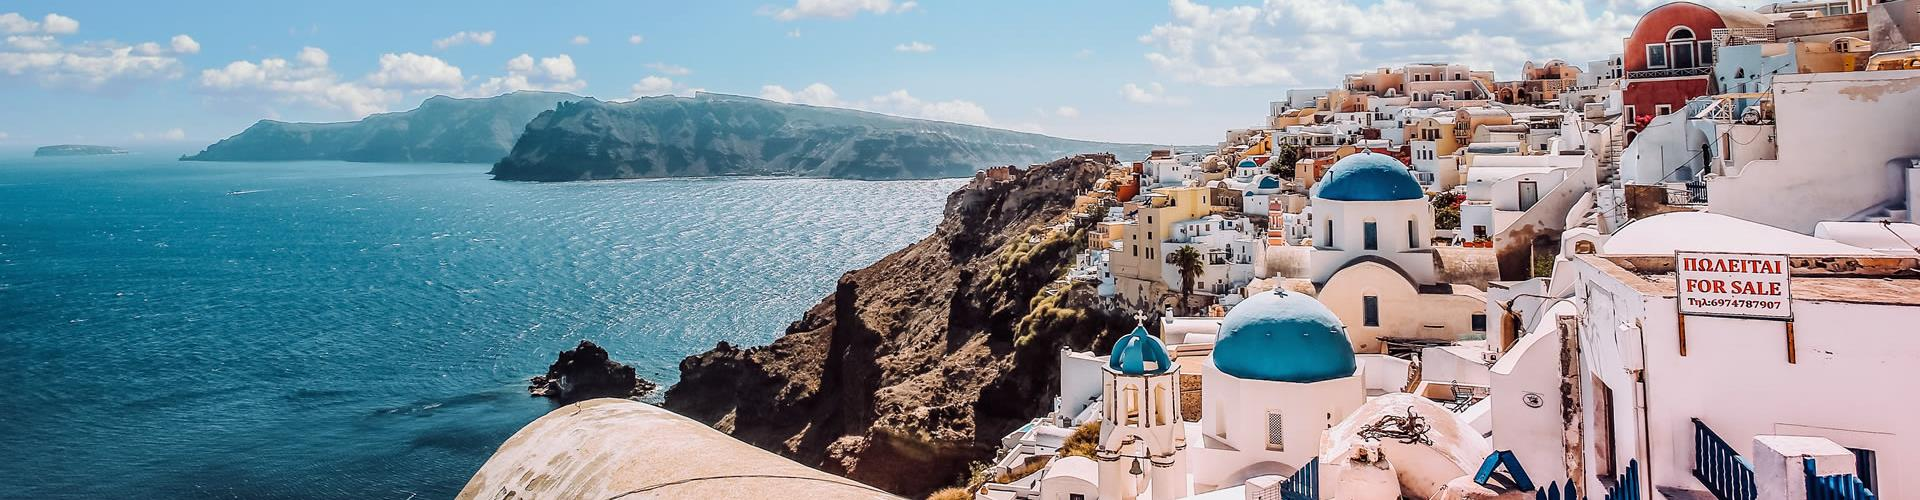 Full Day Santorini Sightseeing Bus Tour With Sunset In Oia